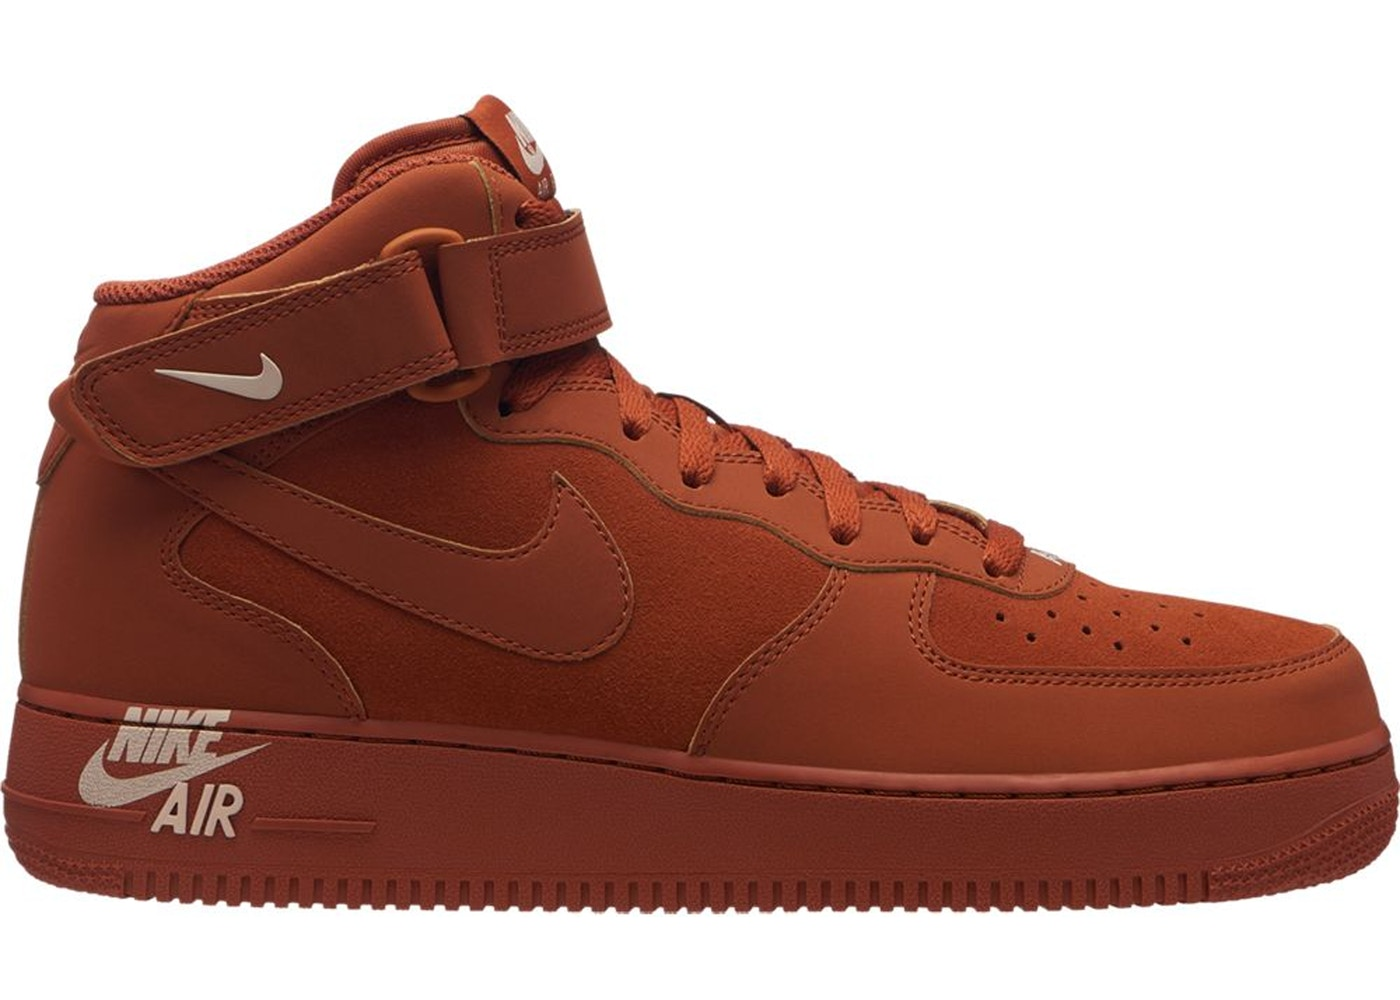 meet b18a4 f76aa Nike Air Force 1 Shoes - Lowest Ask